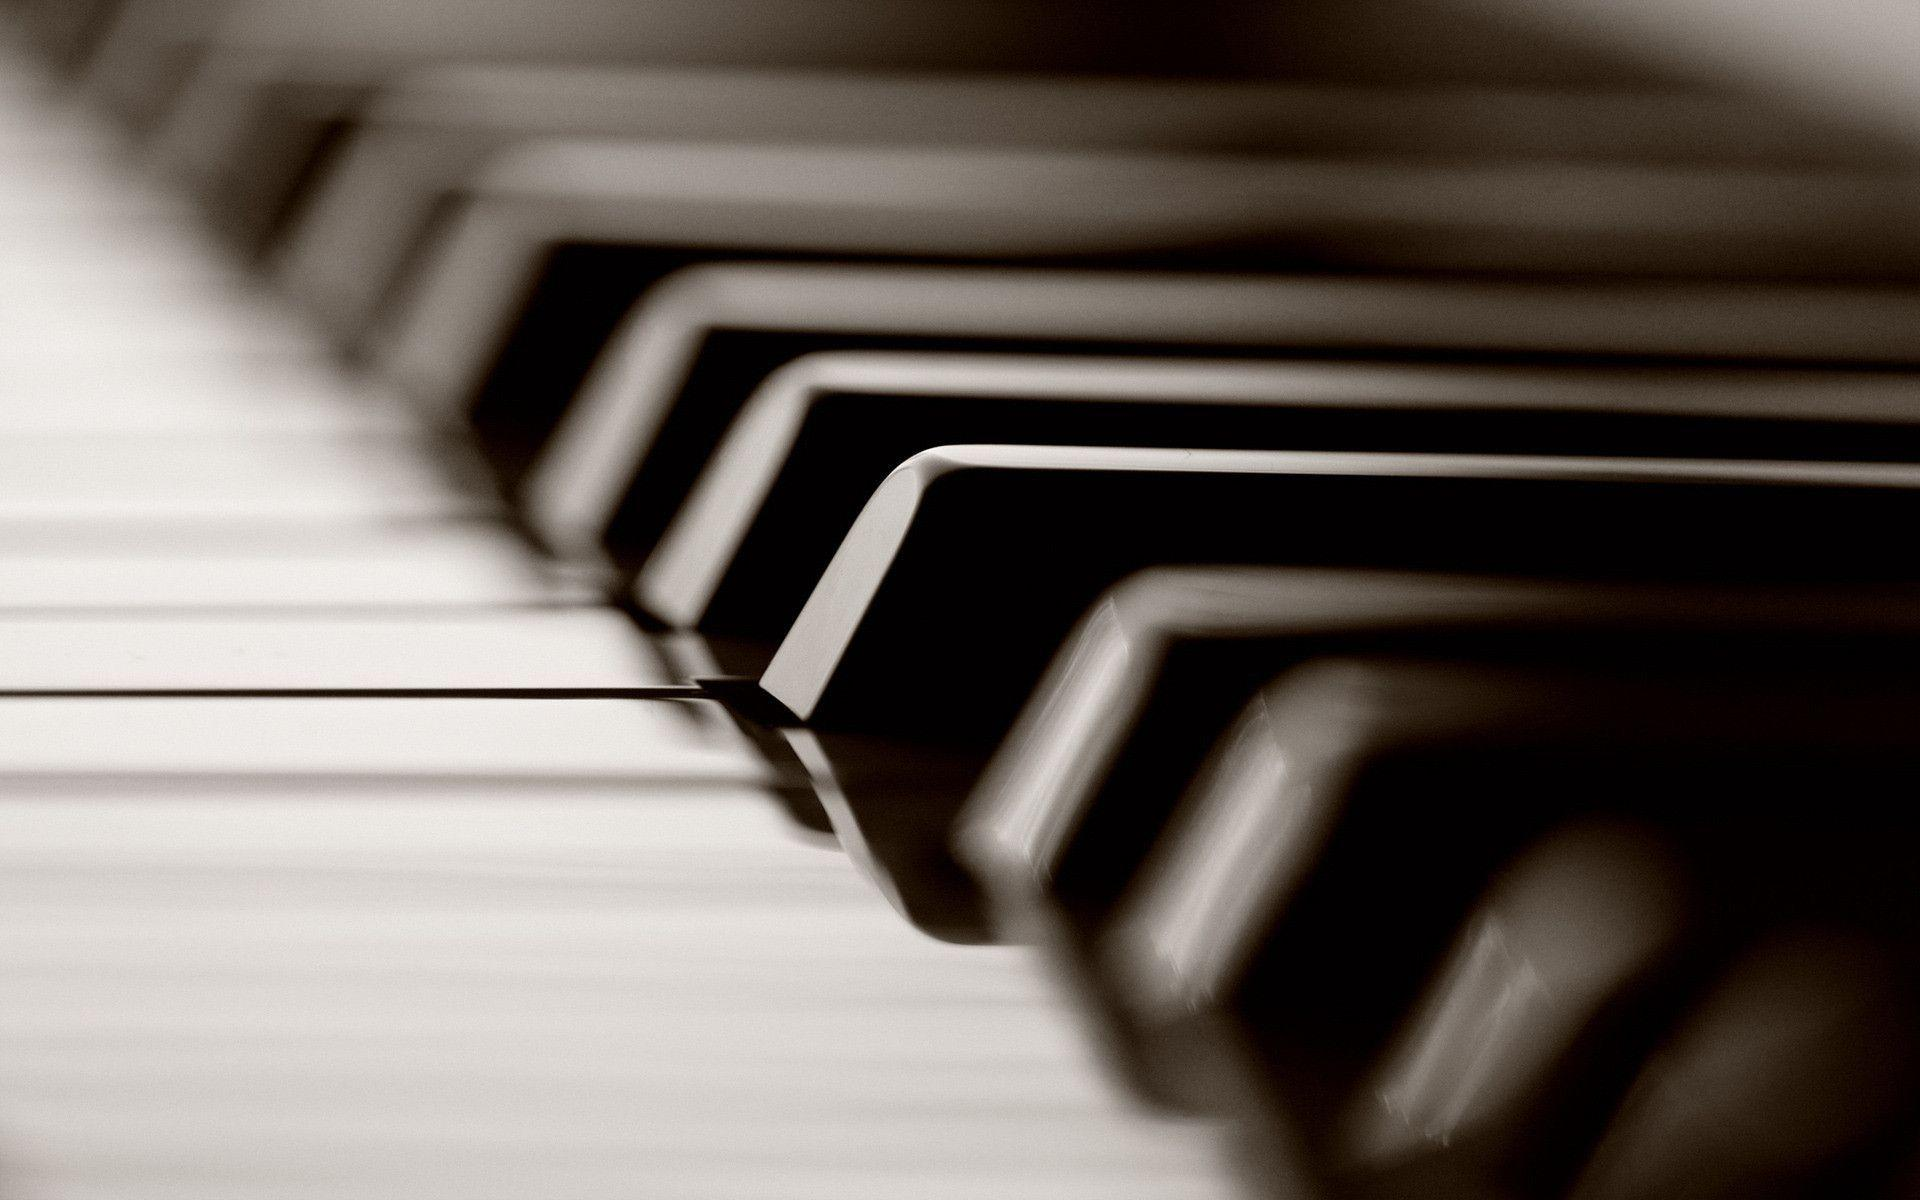 Piano Wallpaper | Large HD Wallpaper Database